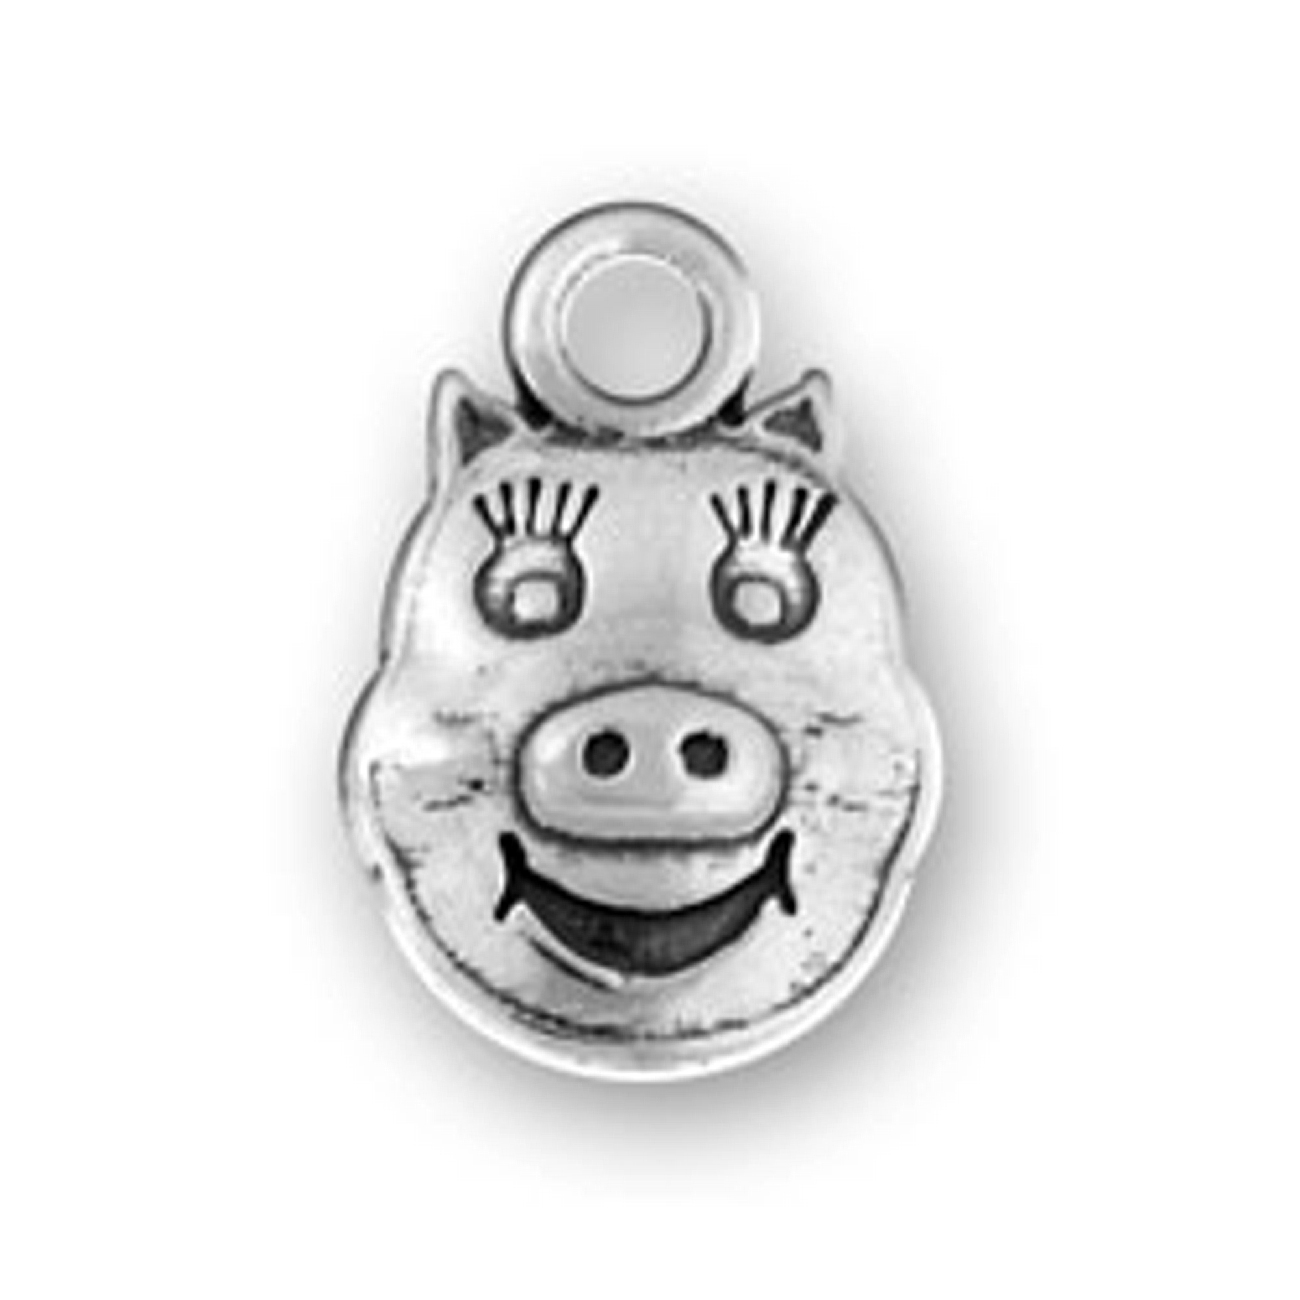 3D Pig Face Charm With Animated Features